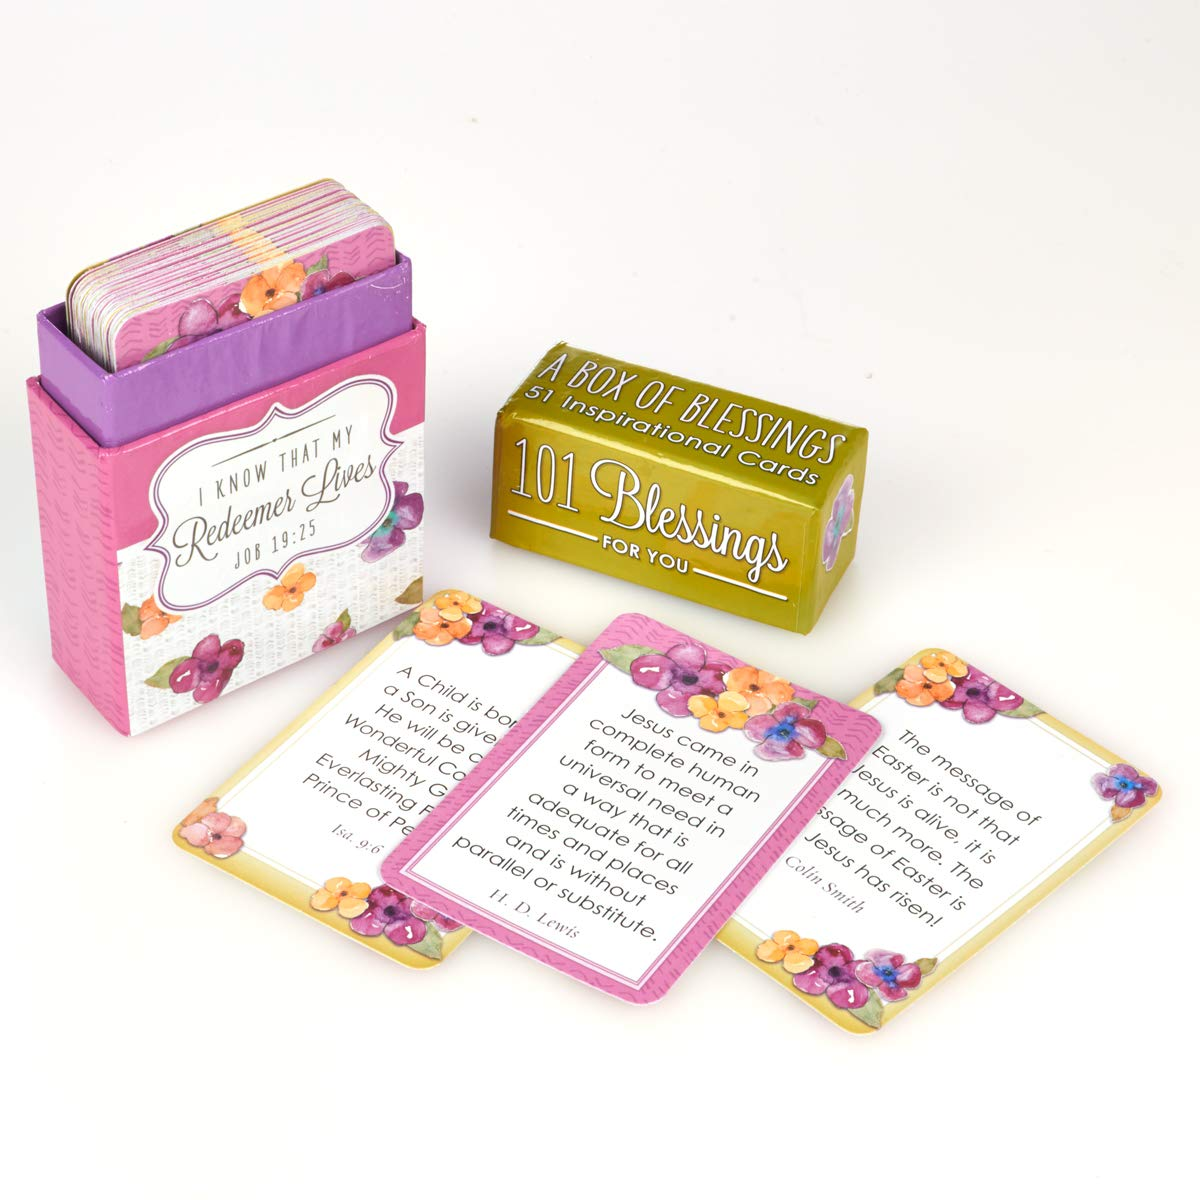 101 Blessings for You Devotional Cards - A Box of Blessings: Christian Art  Gifts: 6006937125315: Amazon.com: Books